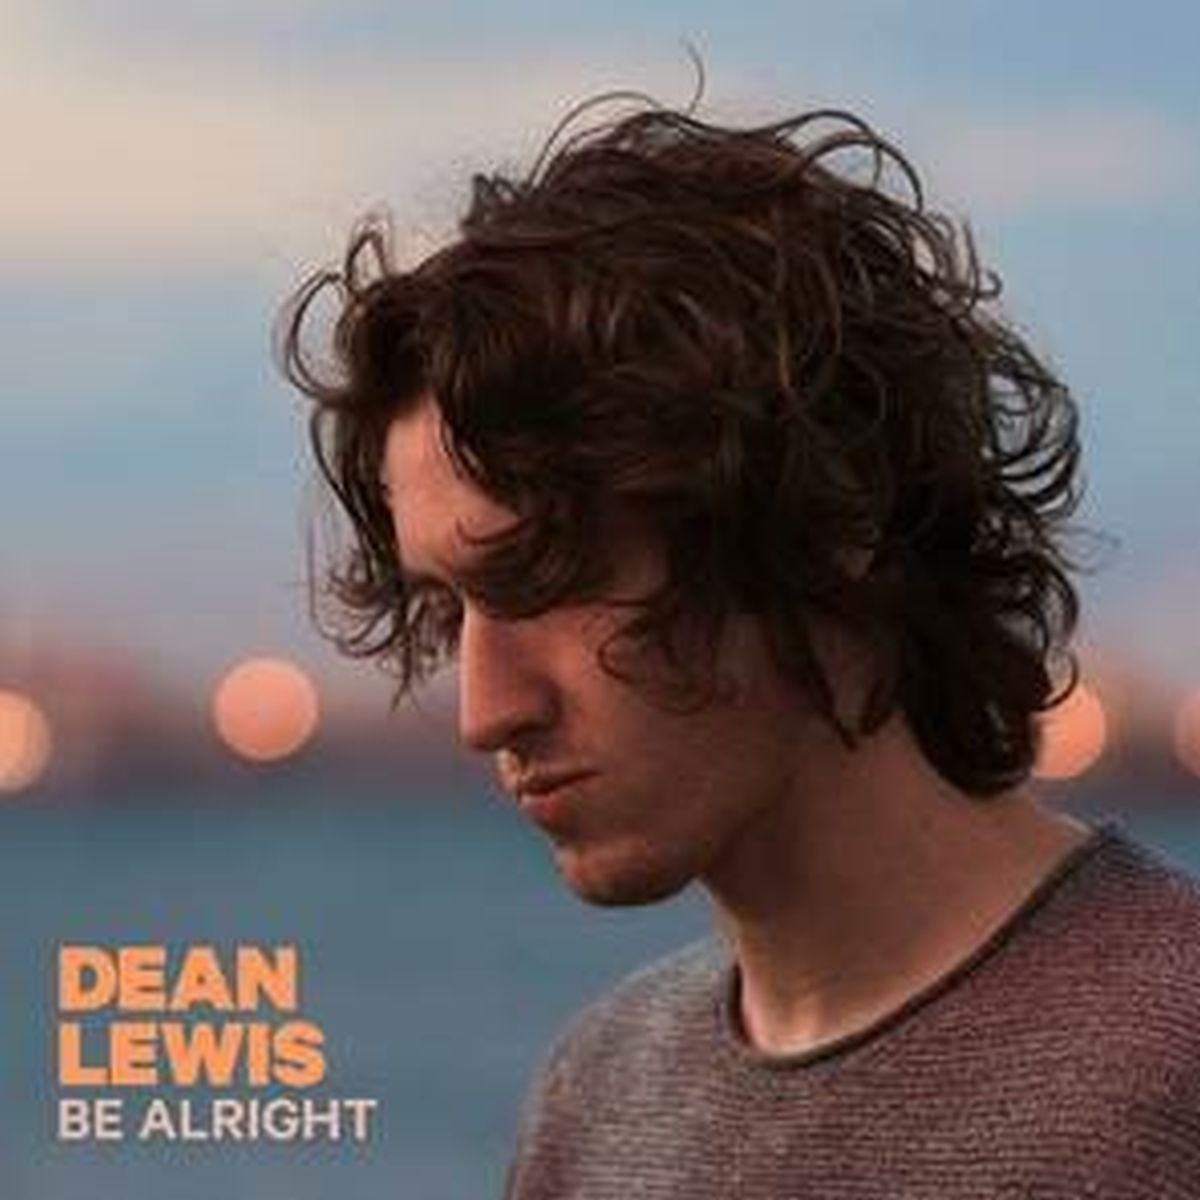 Cover: DEAN LEWIS, BE ALRIGHT